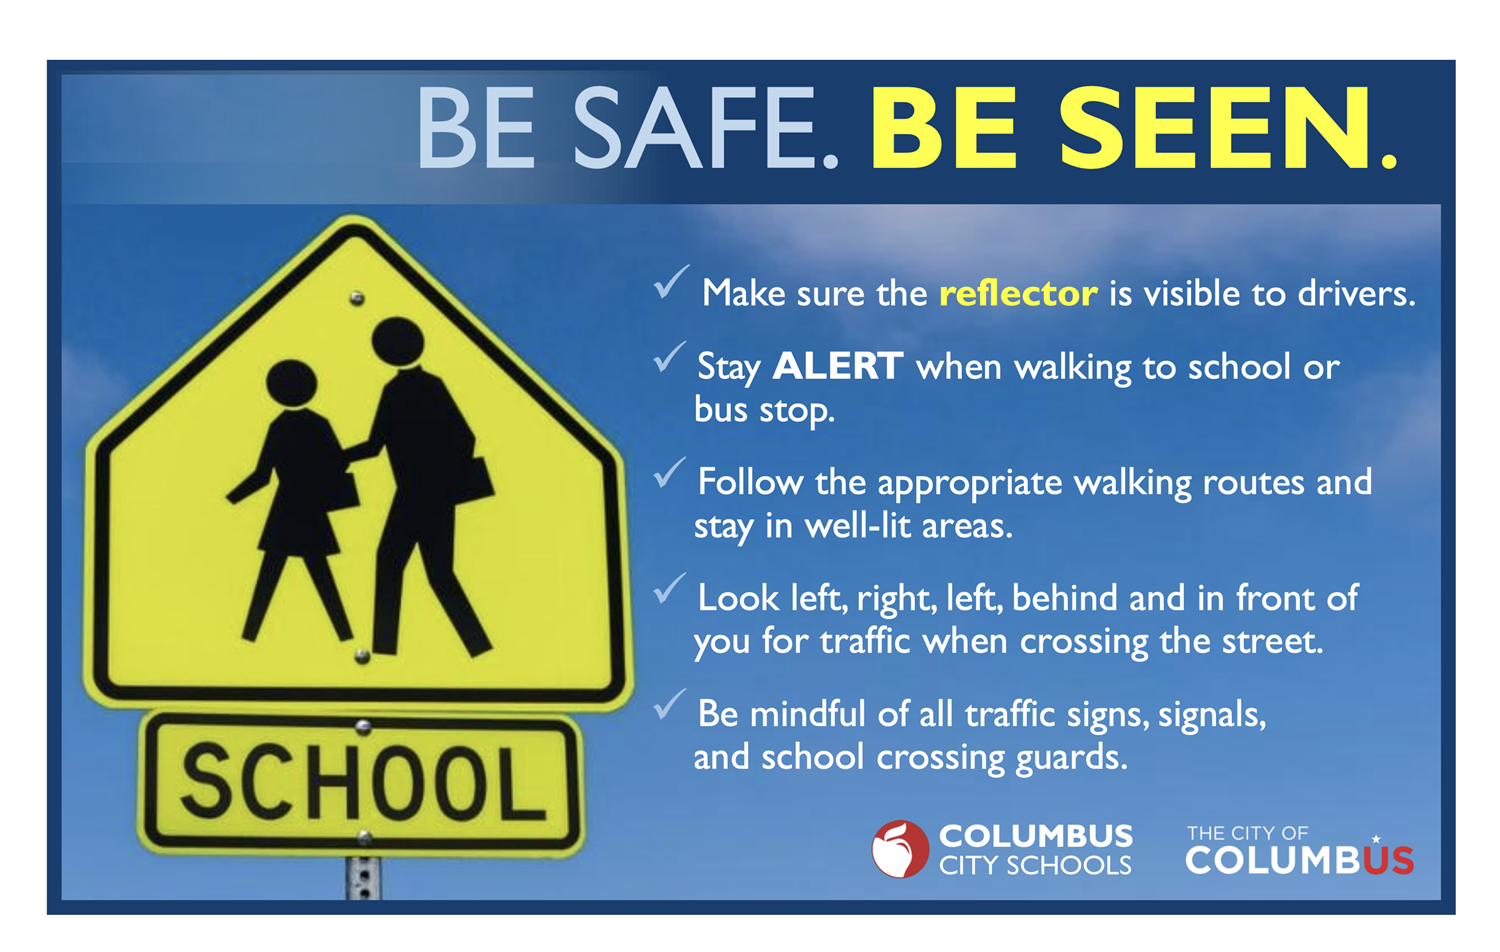 Be Safe. Be Seen.